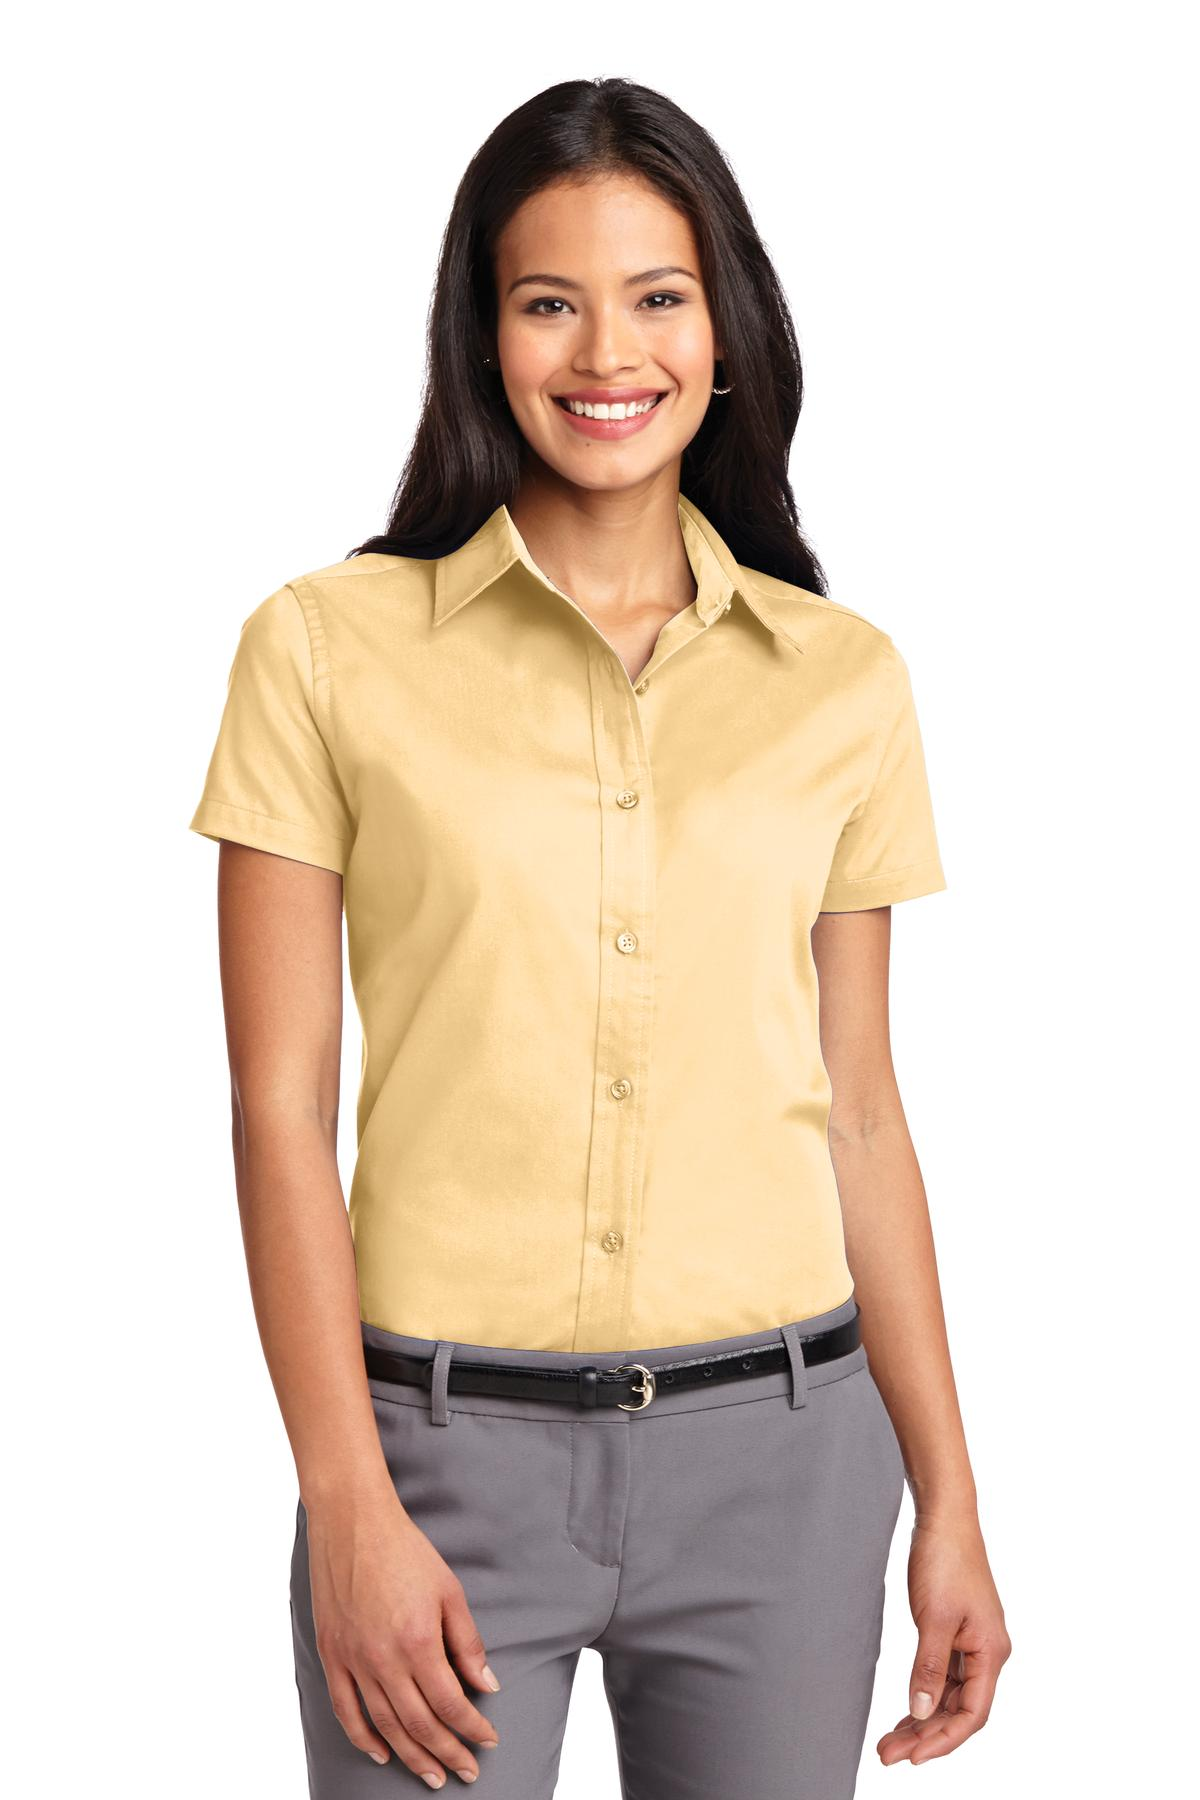 Port Authority ®  Ladies Short Sleeve Easy Care  Shirt.  L508 - Yellow